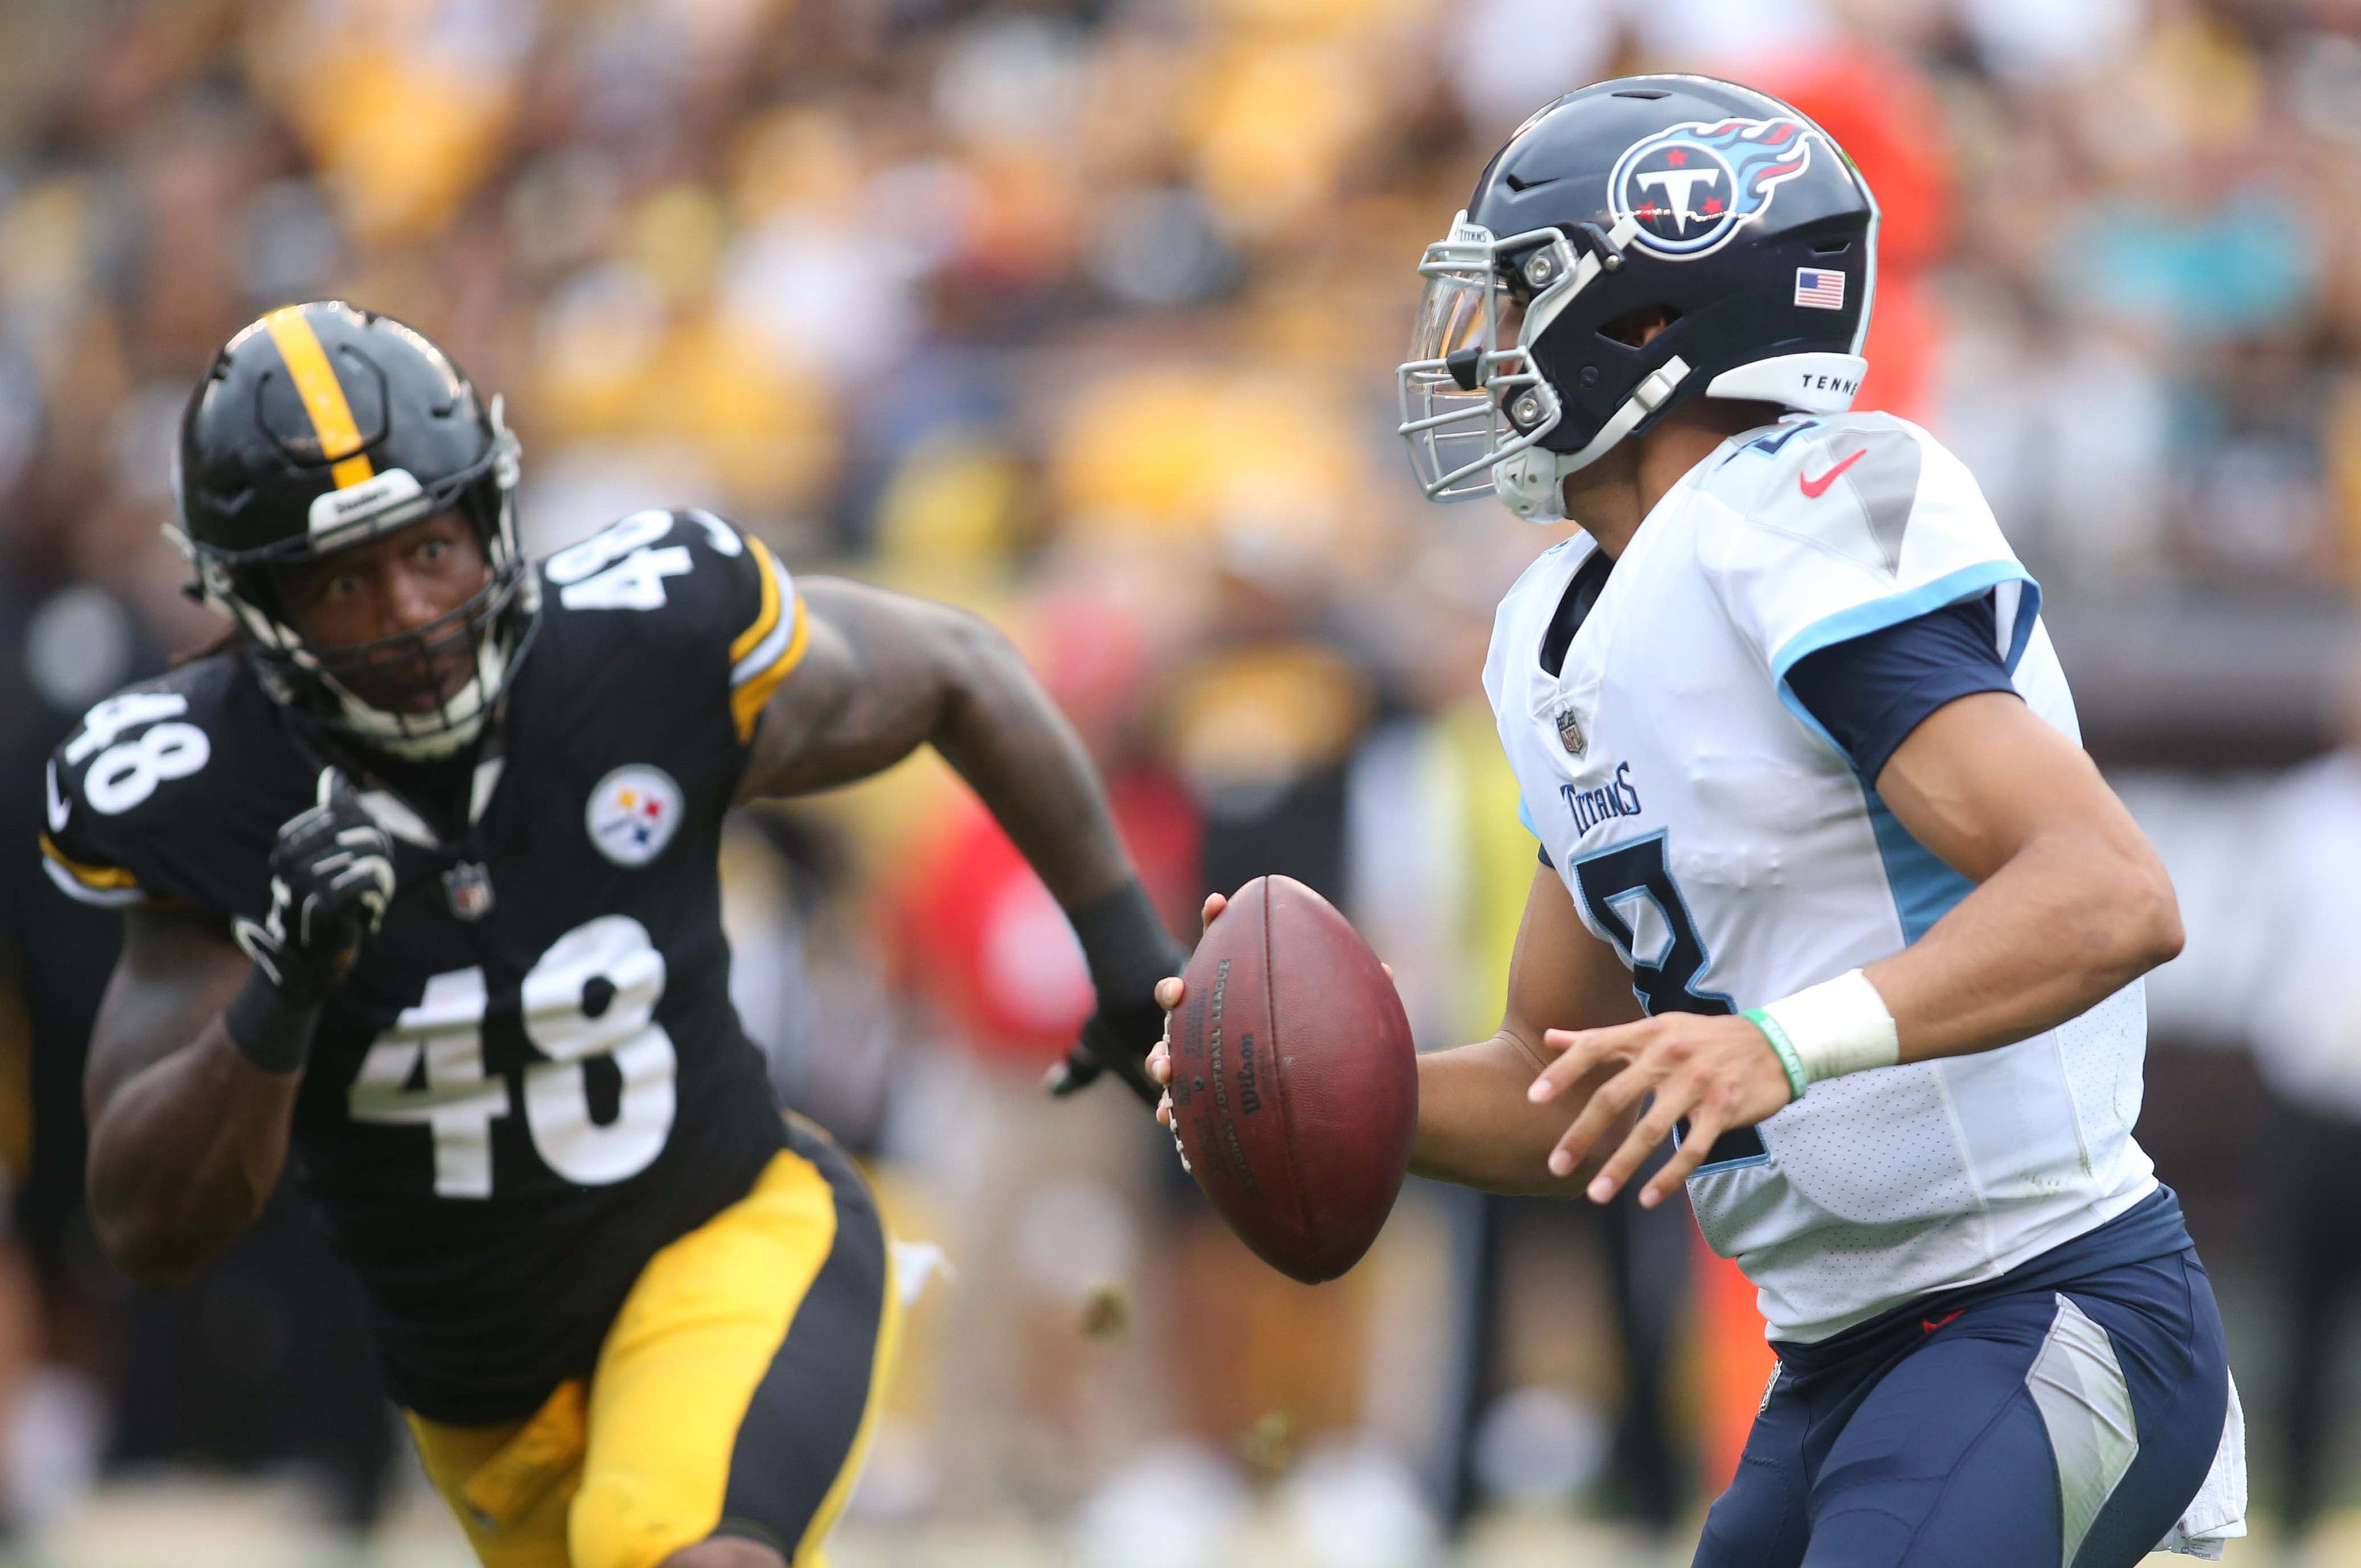 Tennessee Titans quarterback Marcus Mariota (8) scrambles with the ball as Pittsburgh Steelers linebacker Bud Dupree (48) pressures on Aug. 25, 2018.